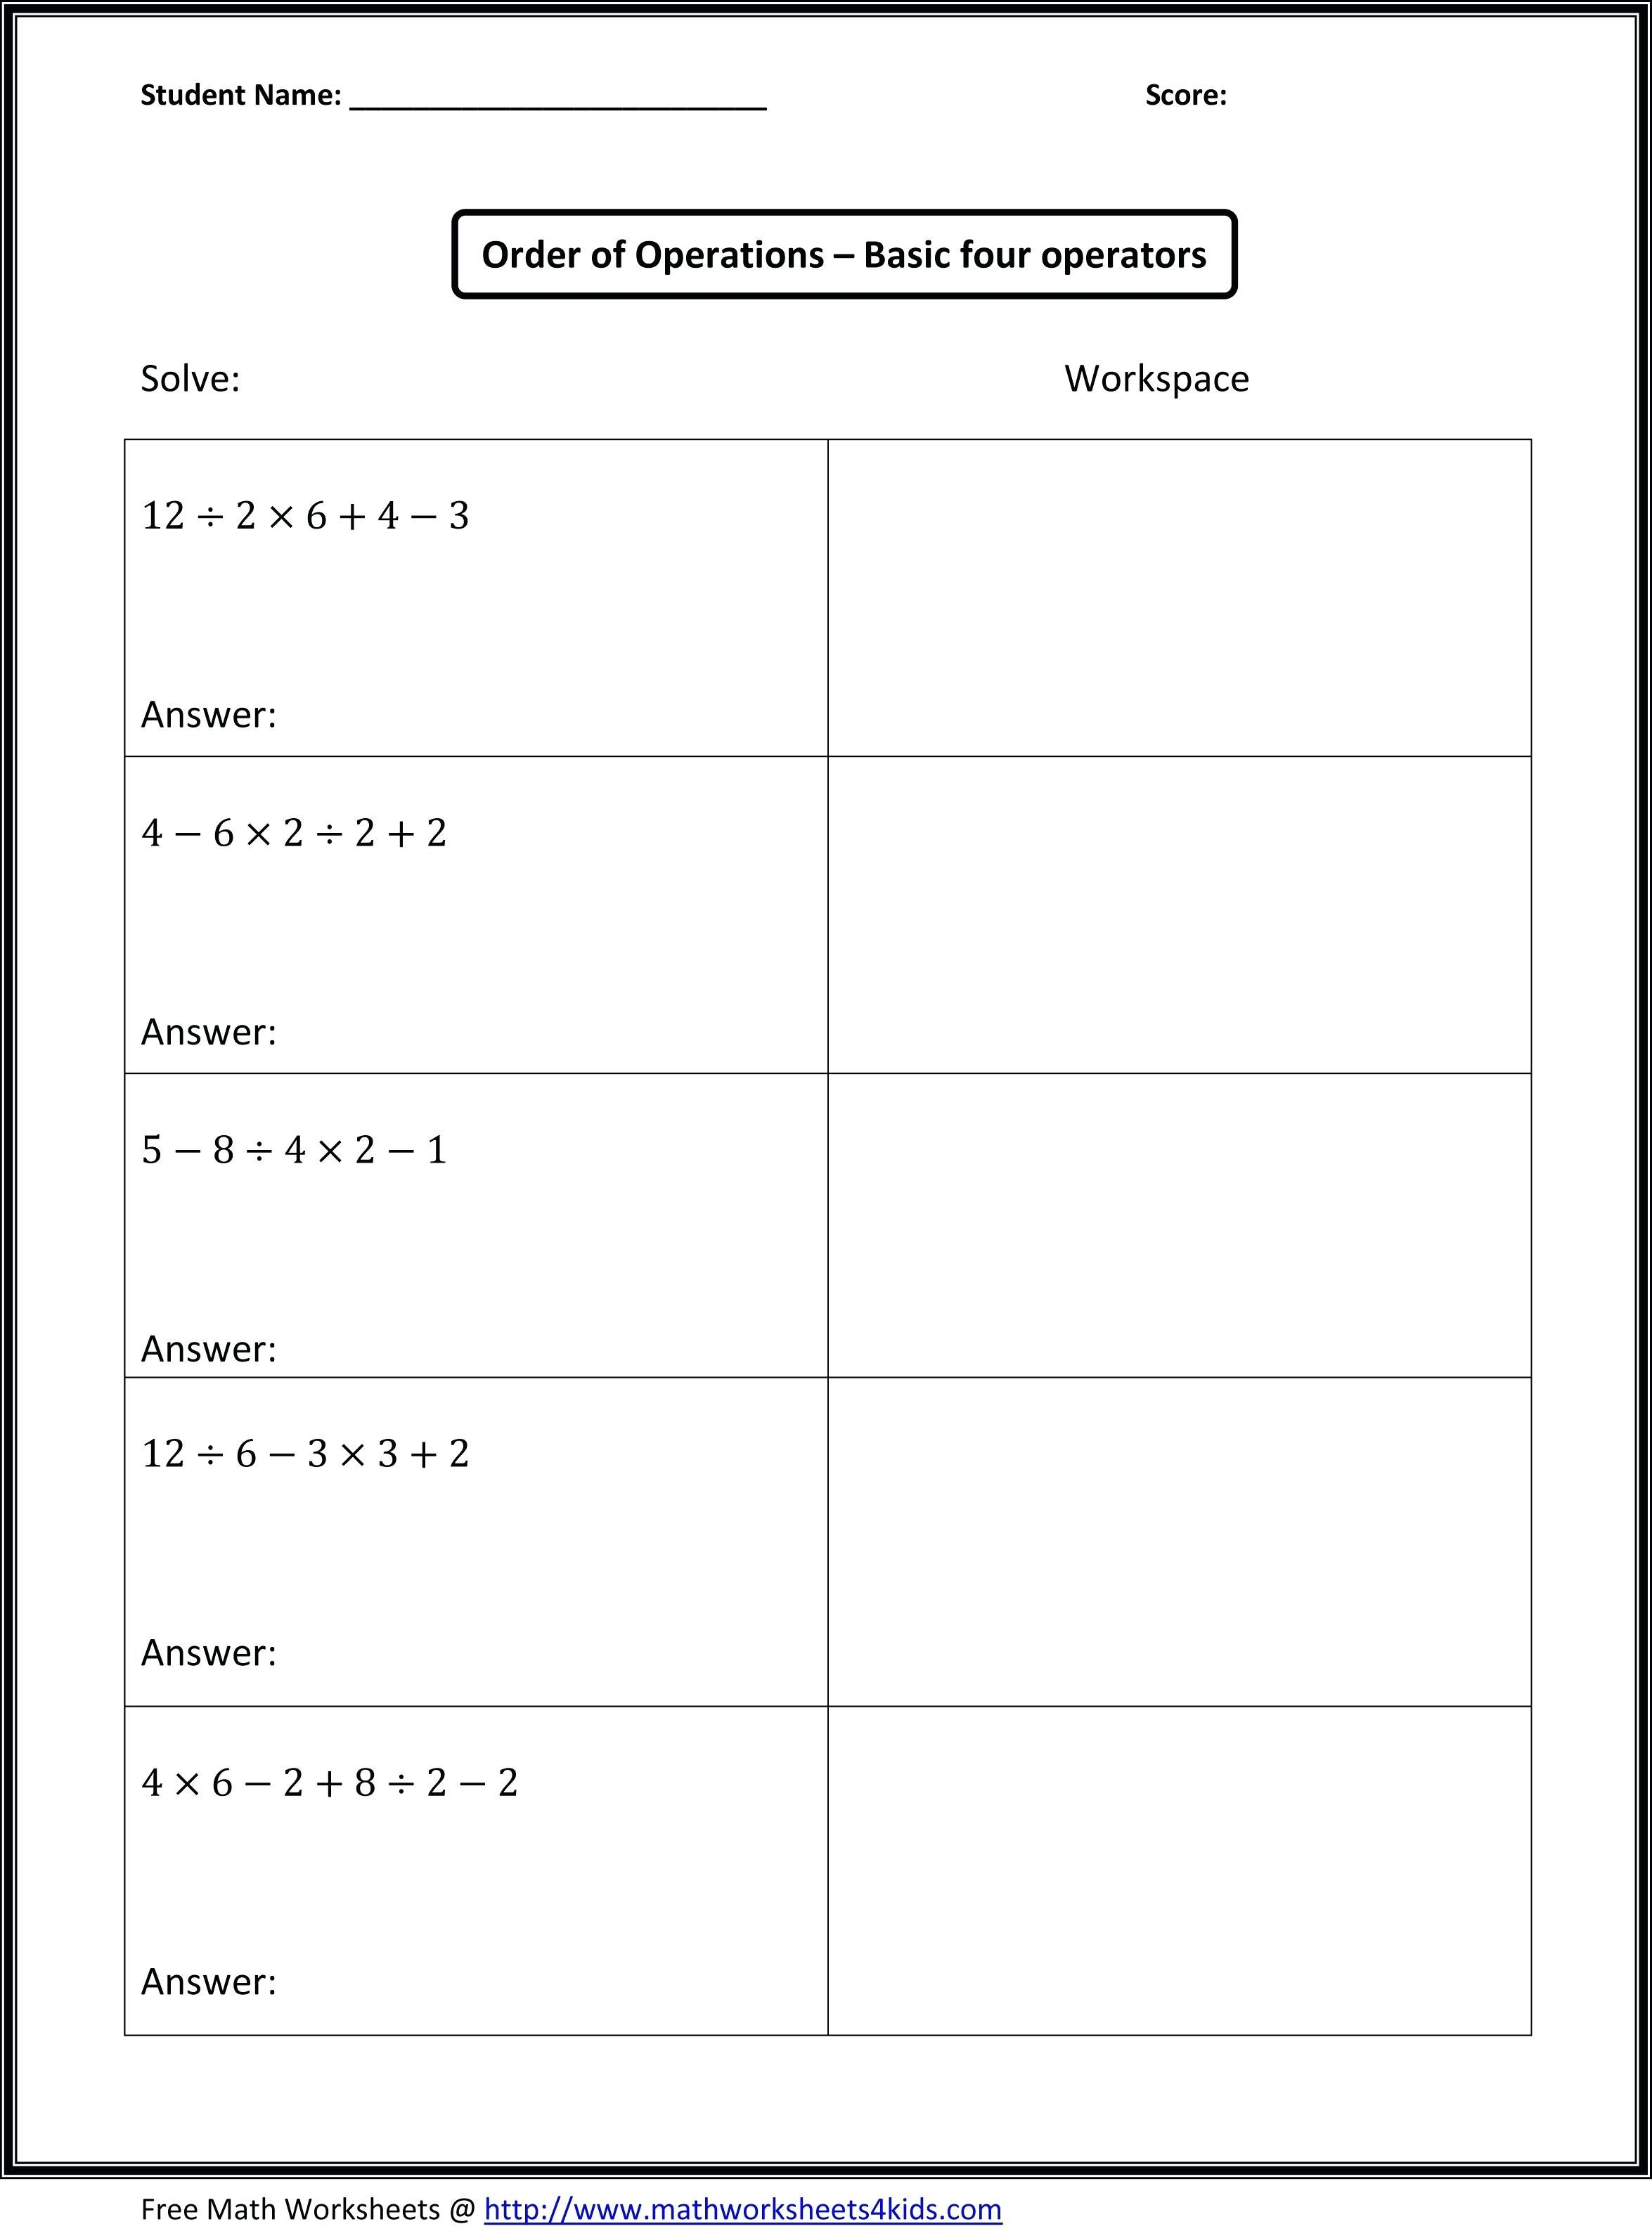 40 Stunning 4th Grade Math Worksheets For You